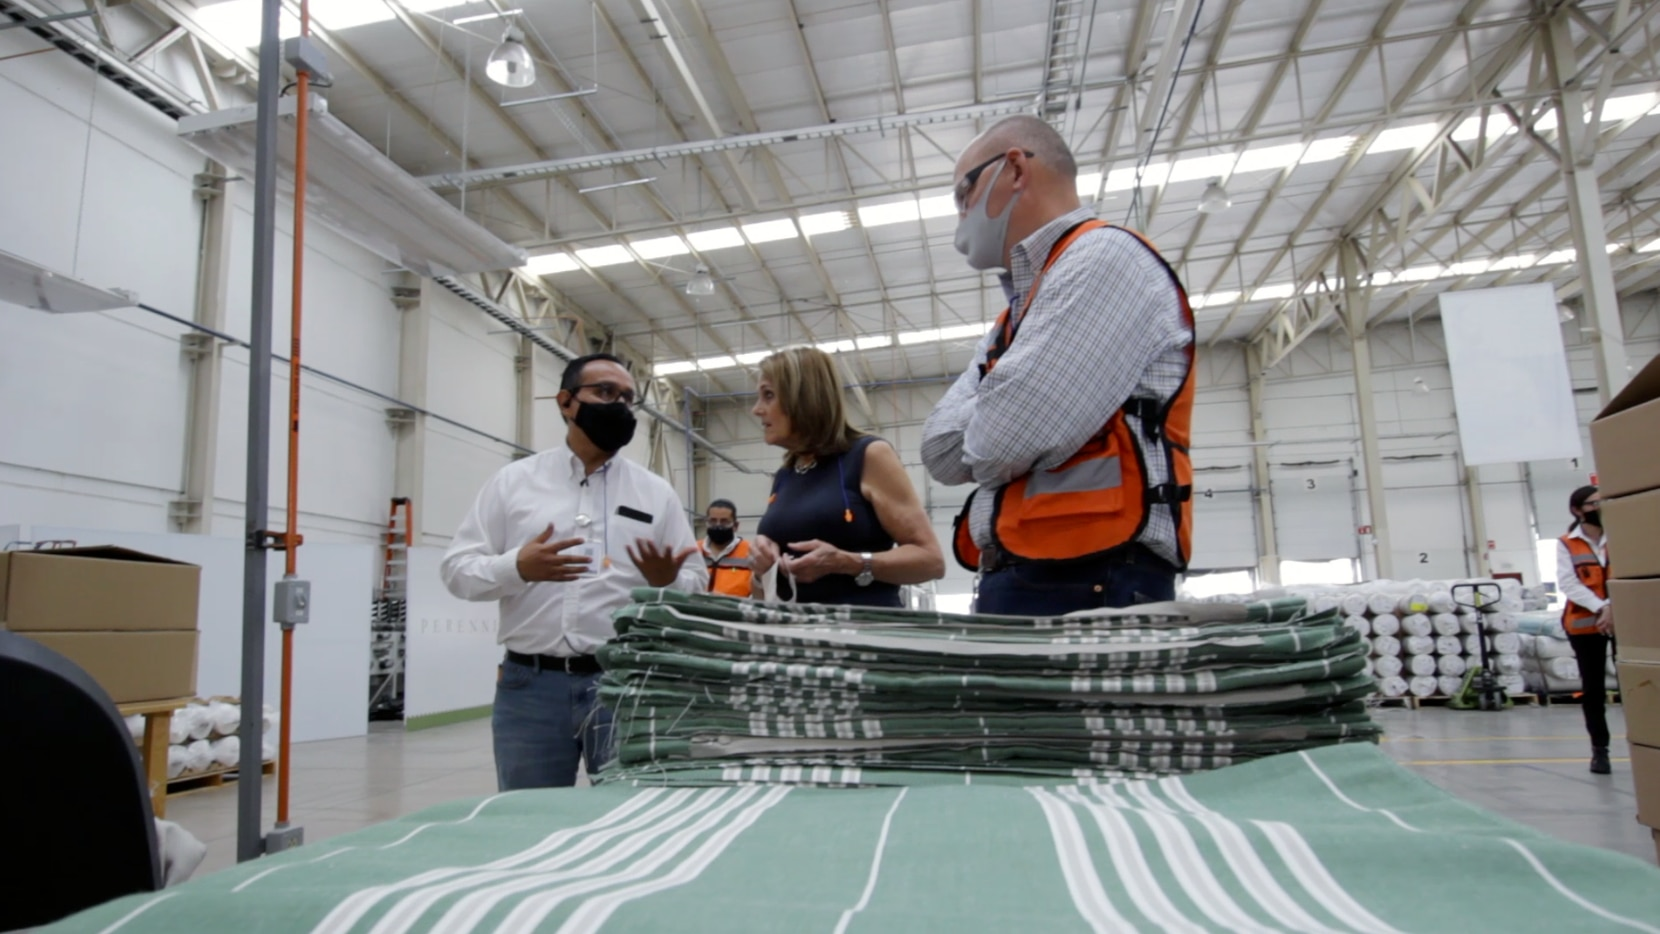 Ann Sutherland, CEO of Perennials and Sutherland, tours the company's expanded production facility in San Luis Potosi, Mexico, in June 2021. The facility will increase production by 30% to help meet increased demand.